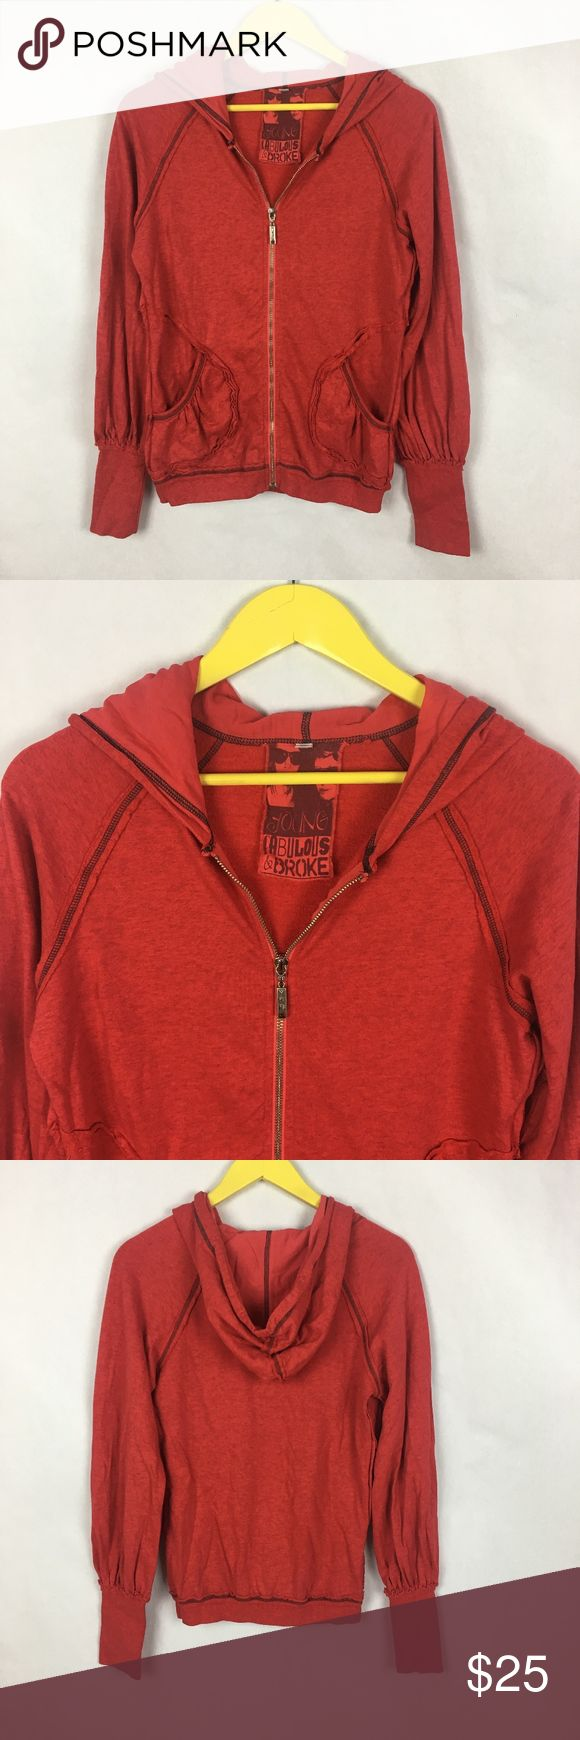 """Young Fabulous &  Broke Red Zip Up Hoodie Exellent Condition Young Fabulous and Broke Red Zip Up Hoodie.  Raw Edges.  Light weight. Front Pockets. Size Large.   Armpit-armpit: 20"""" Length: 25"""" Fabric: 50% cotton/50% Modal  No visible flaws or defects. No trades. Offers warmly welcomed.    Young Fabulous and Broke Zip Up Hoodie in Red Young Fabulous & Broke Tops Sweatshirts & Hoodies"""